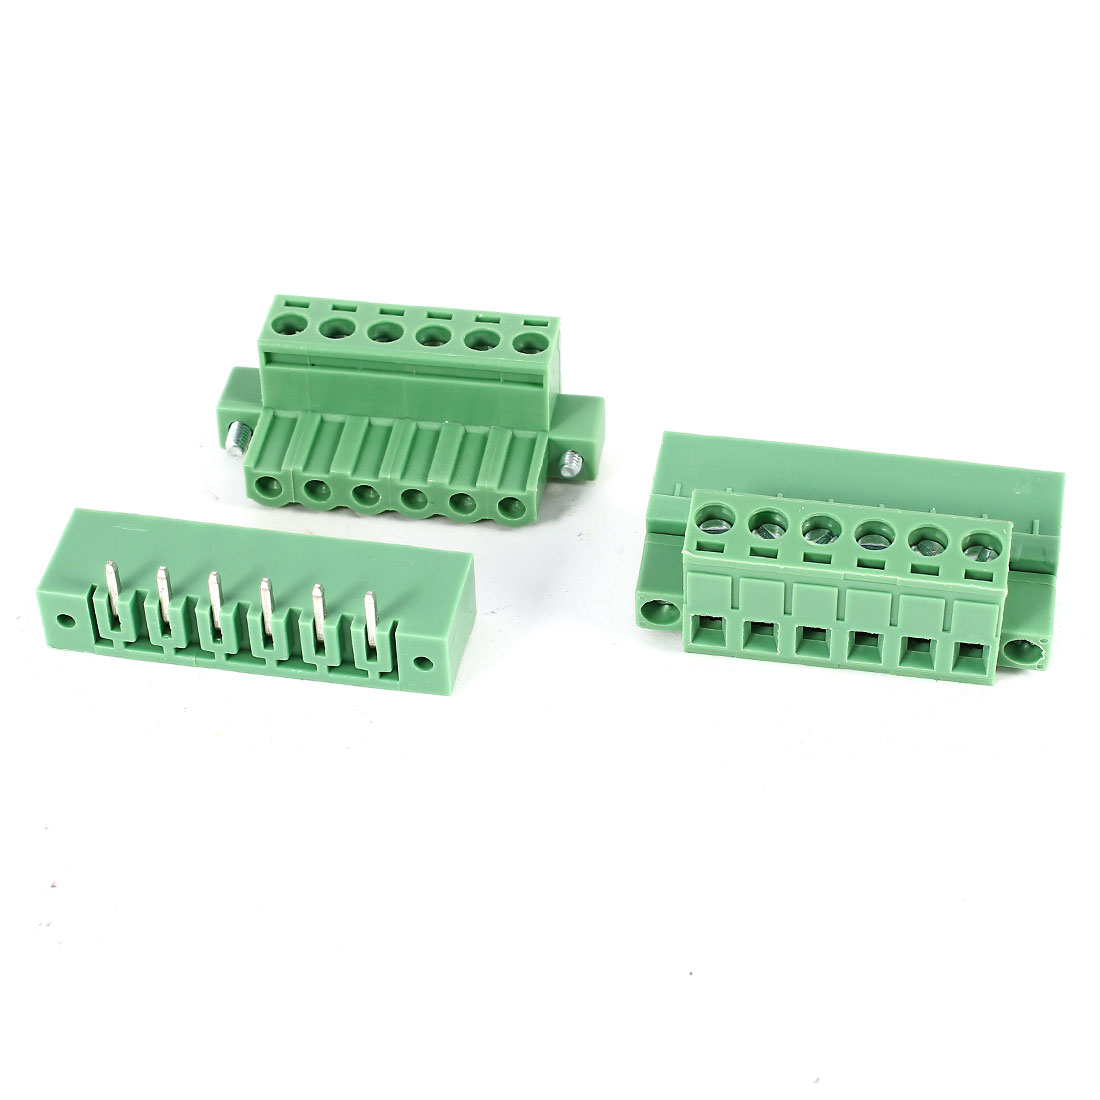 2 Pcs Green KF2EDGK 5.08mm 6Position Right Angle 6Pin Pluggable Screw Terminal Block Connector 300V 10A